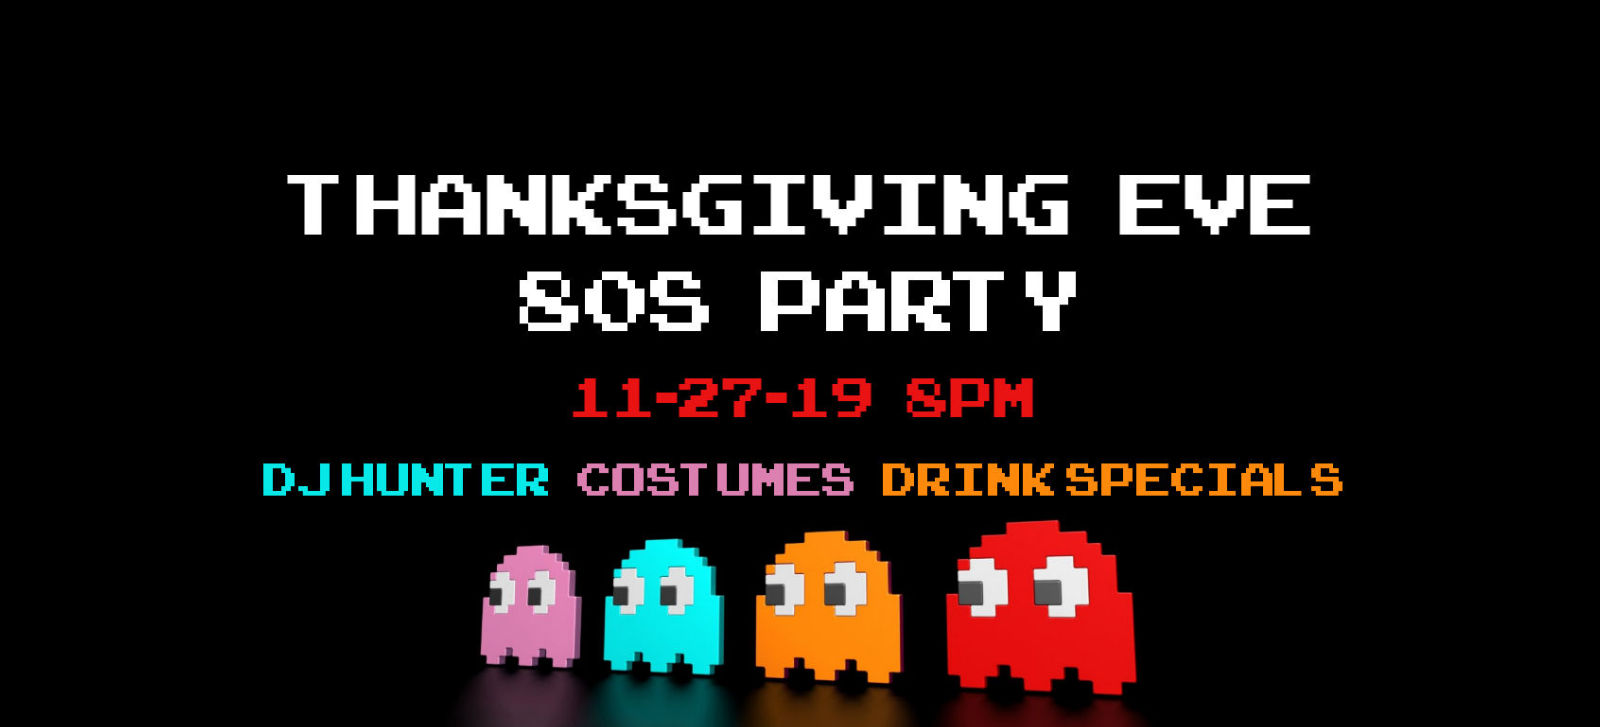 Thanksgiving Eve 80s Party 11/27/19 8pm